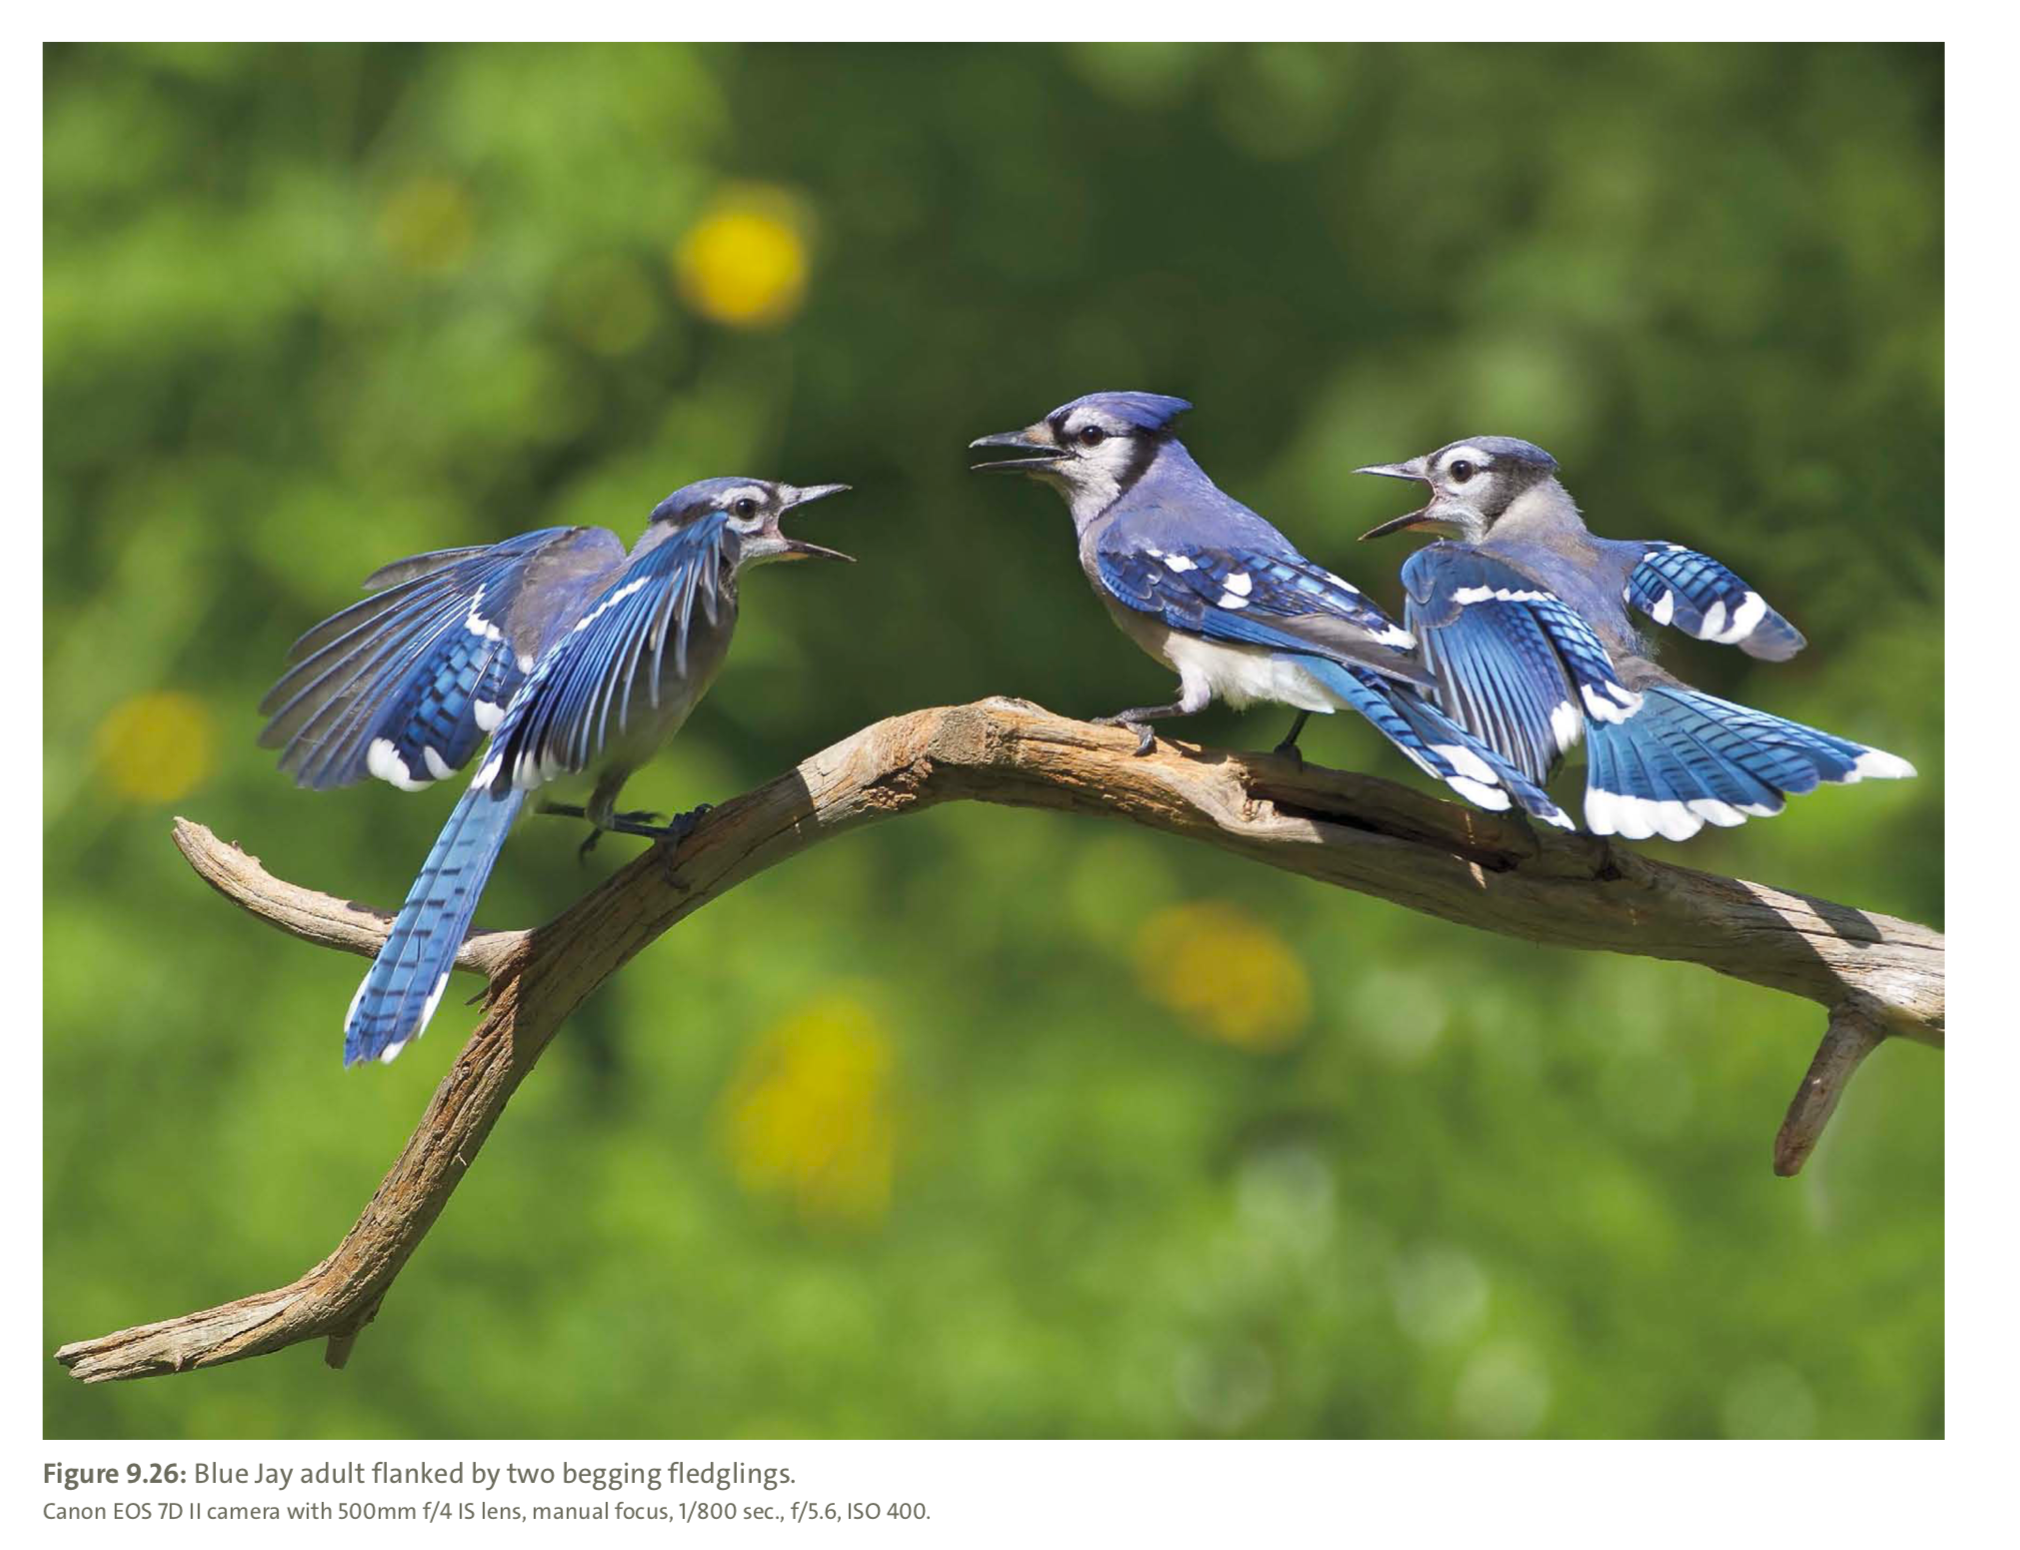 Figure 9.26 from Mastering Bird Photography  Photo: Marie Read